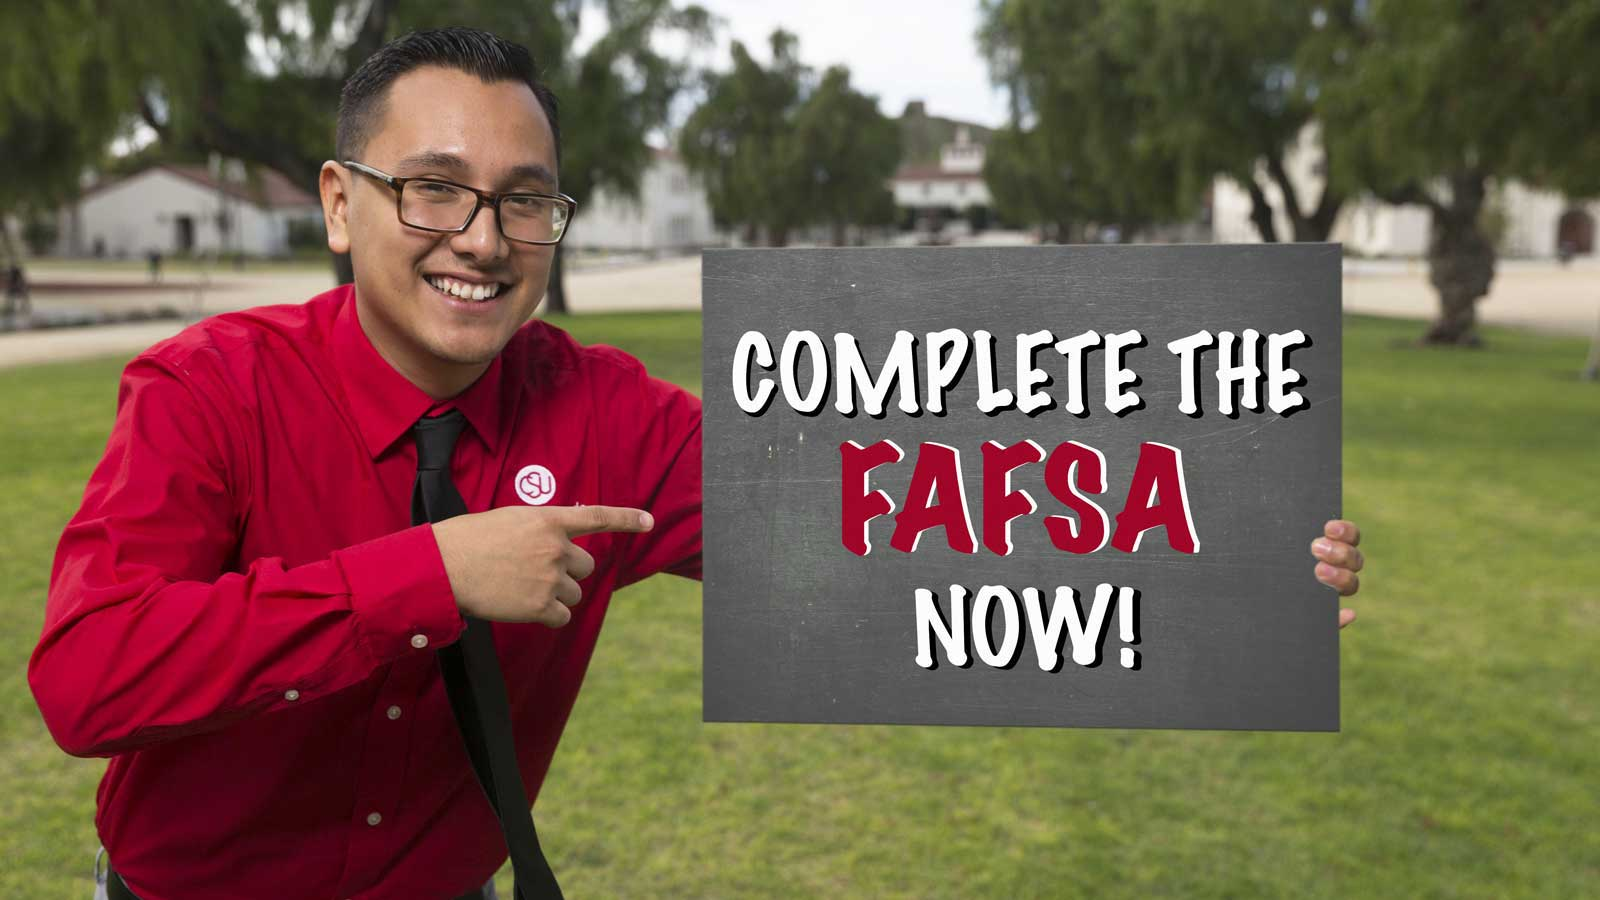 Complete the FAFSA now!